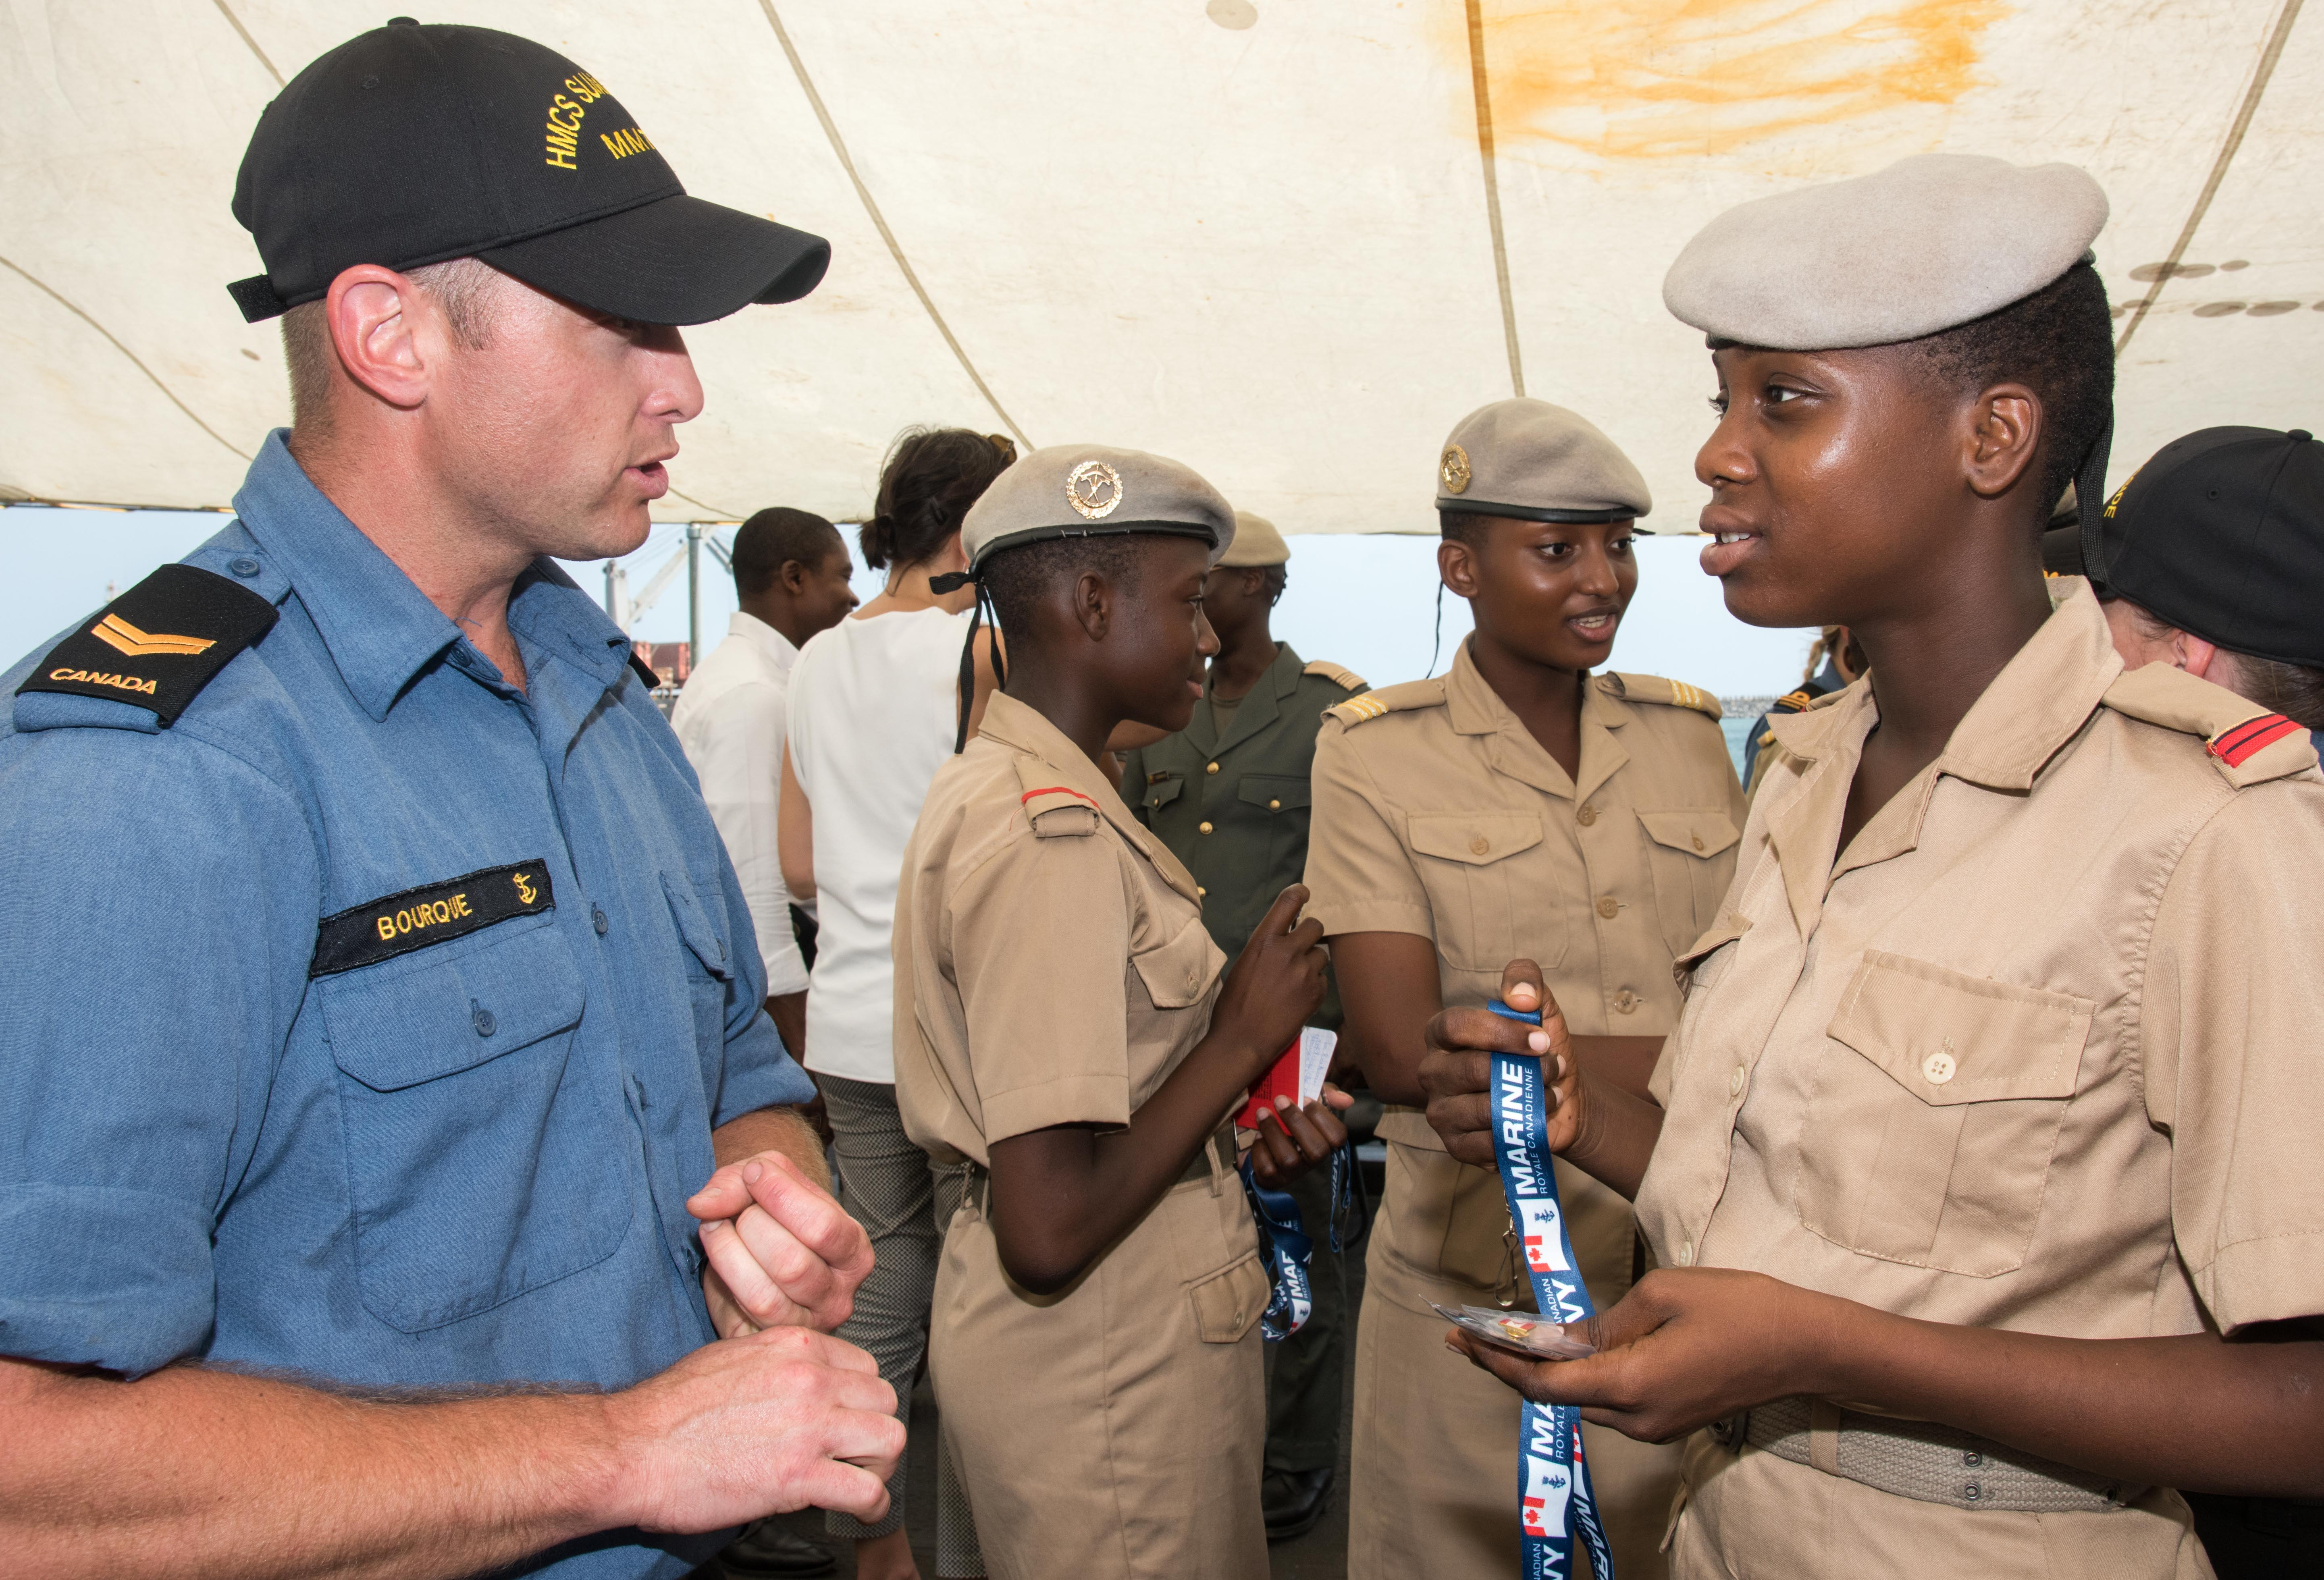 slide - Leading Seaman Robert Bourque talks to visitors aboard HMCS Summerside during a visit to Benin, West Africa.